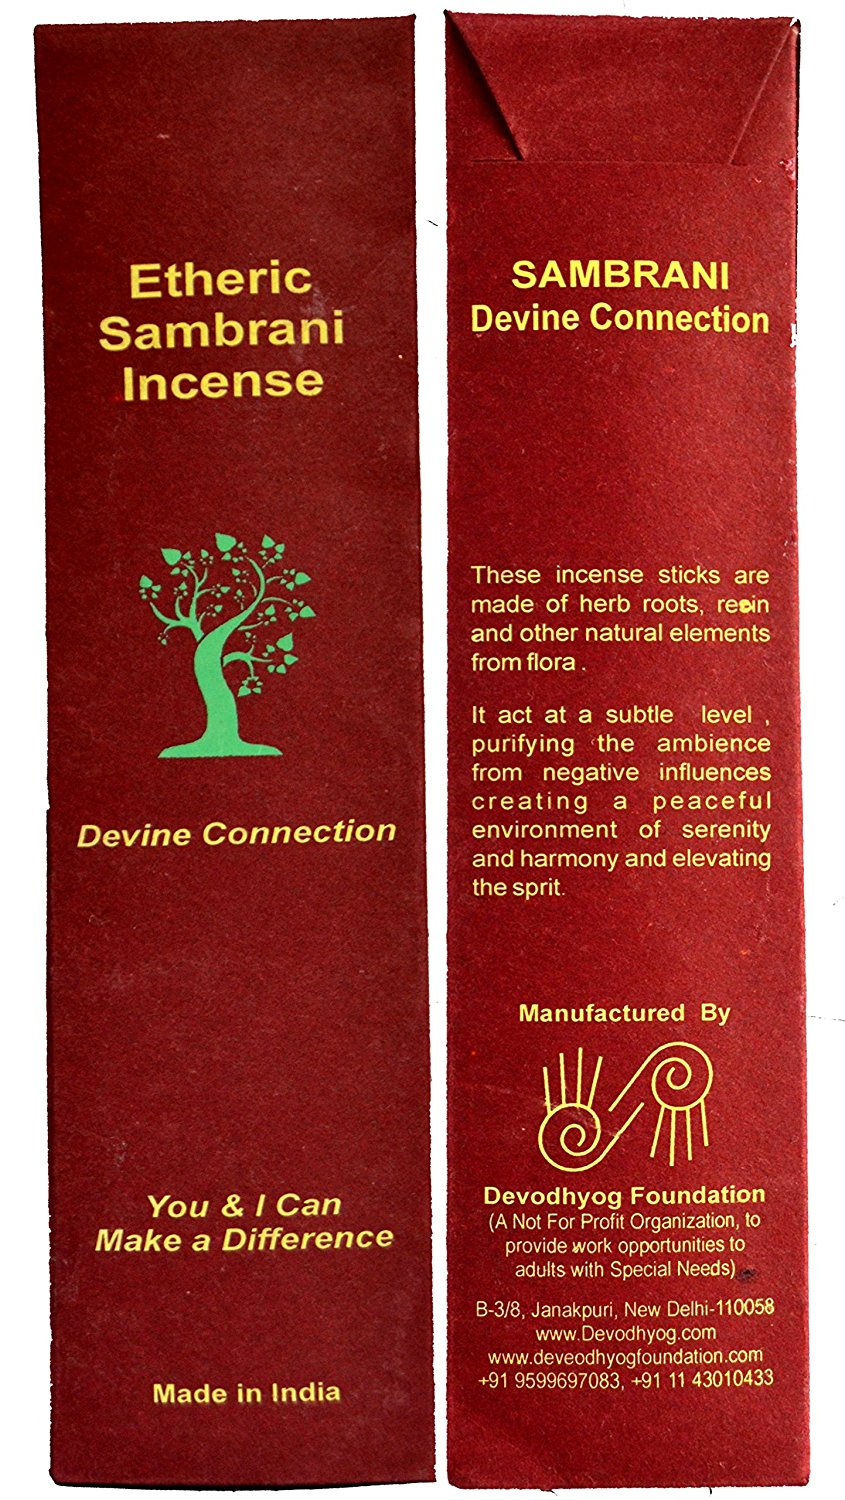 Etheric Sambrani Incense (15 sticks per pack)